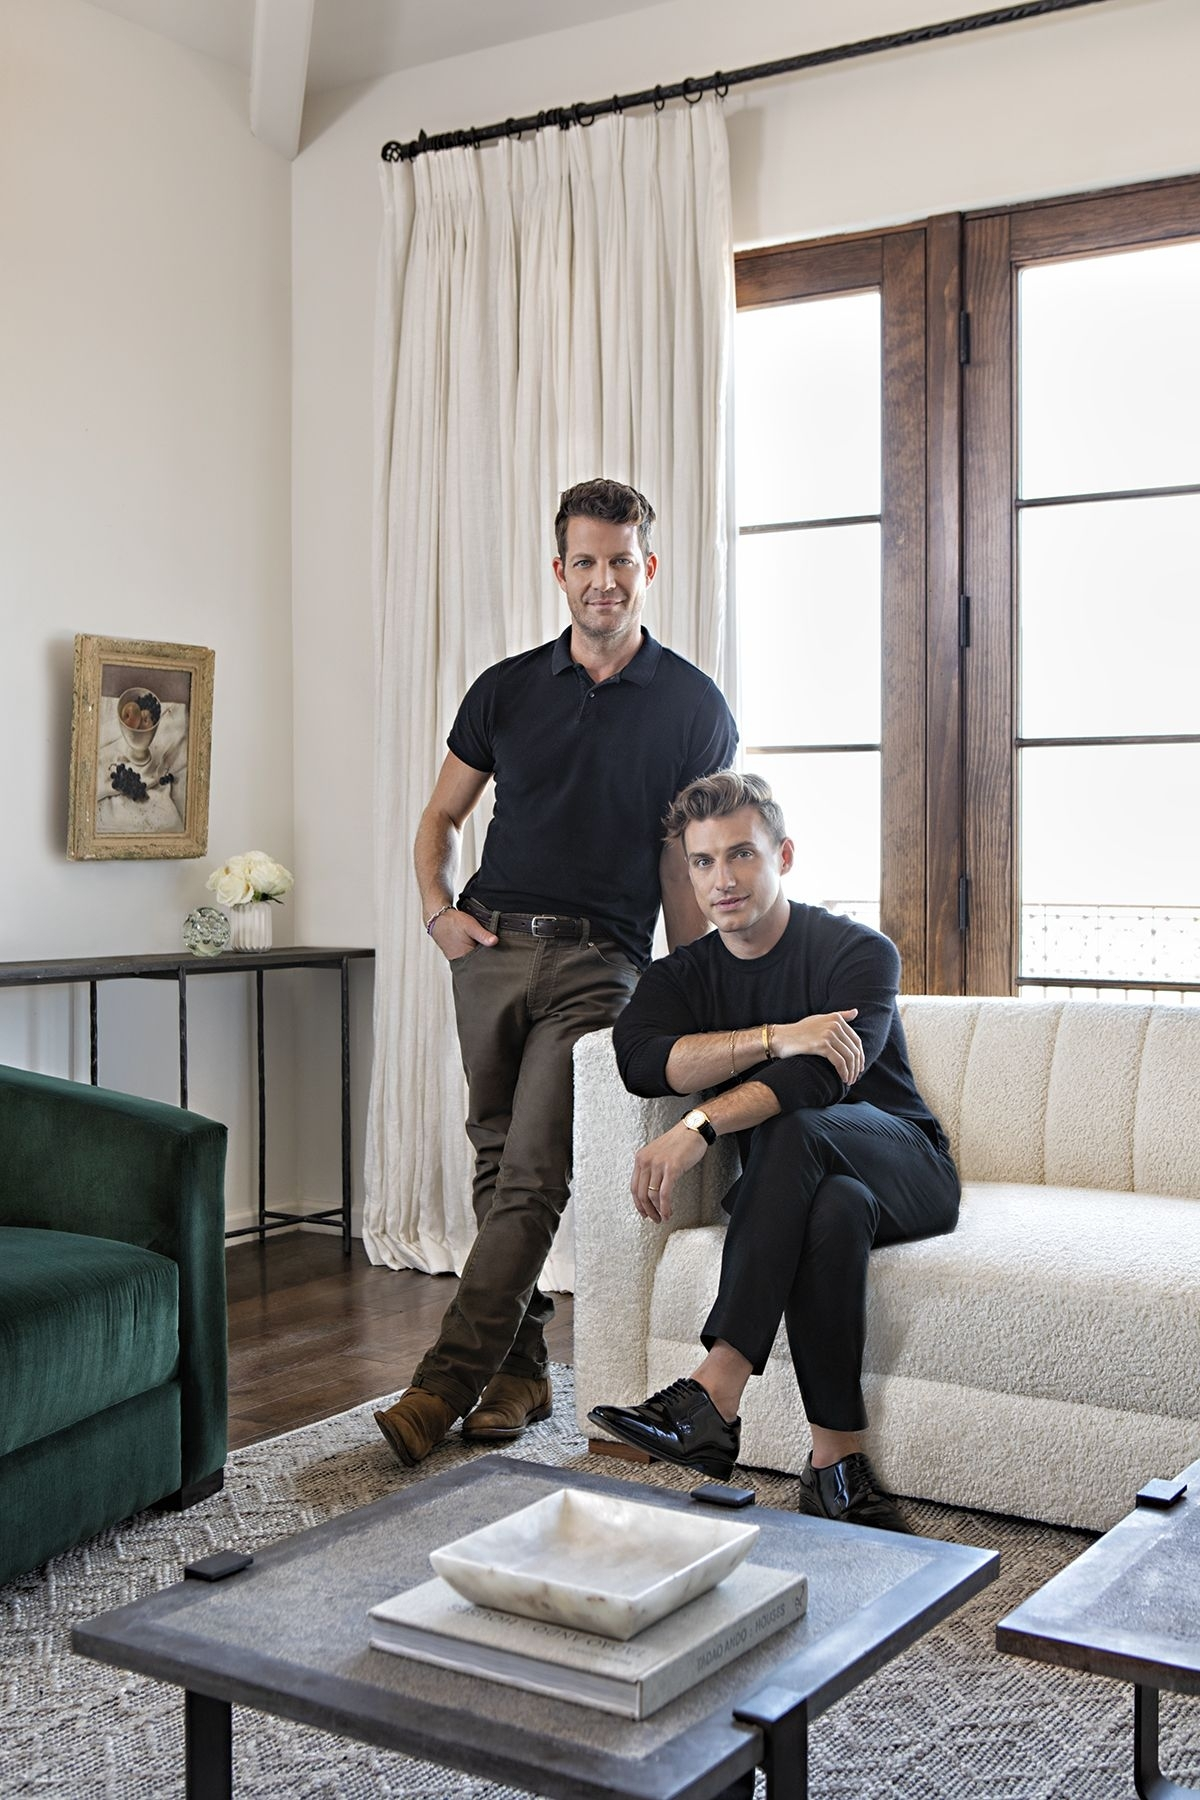 Nate Berkus & Jeremiah Brent's Newest Affordable Collection | Rue pertaining to Whitley 3 Piece Sectionals by Nate Berkus and Jeremiah Brent